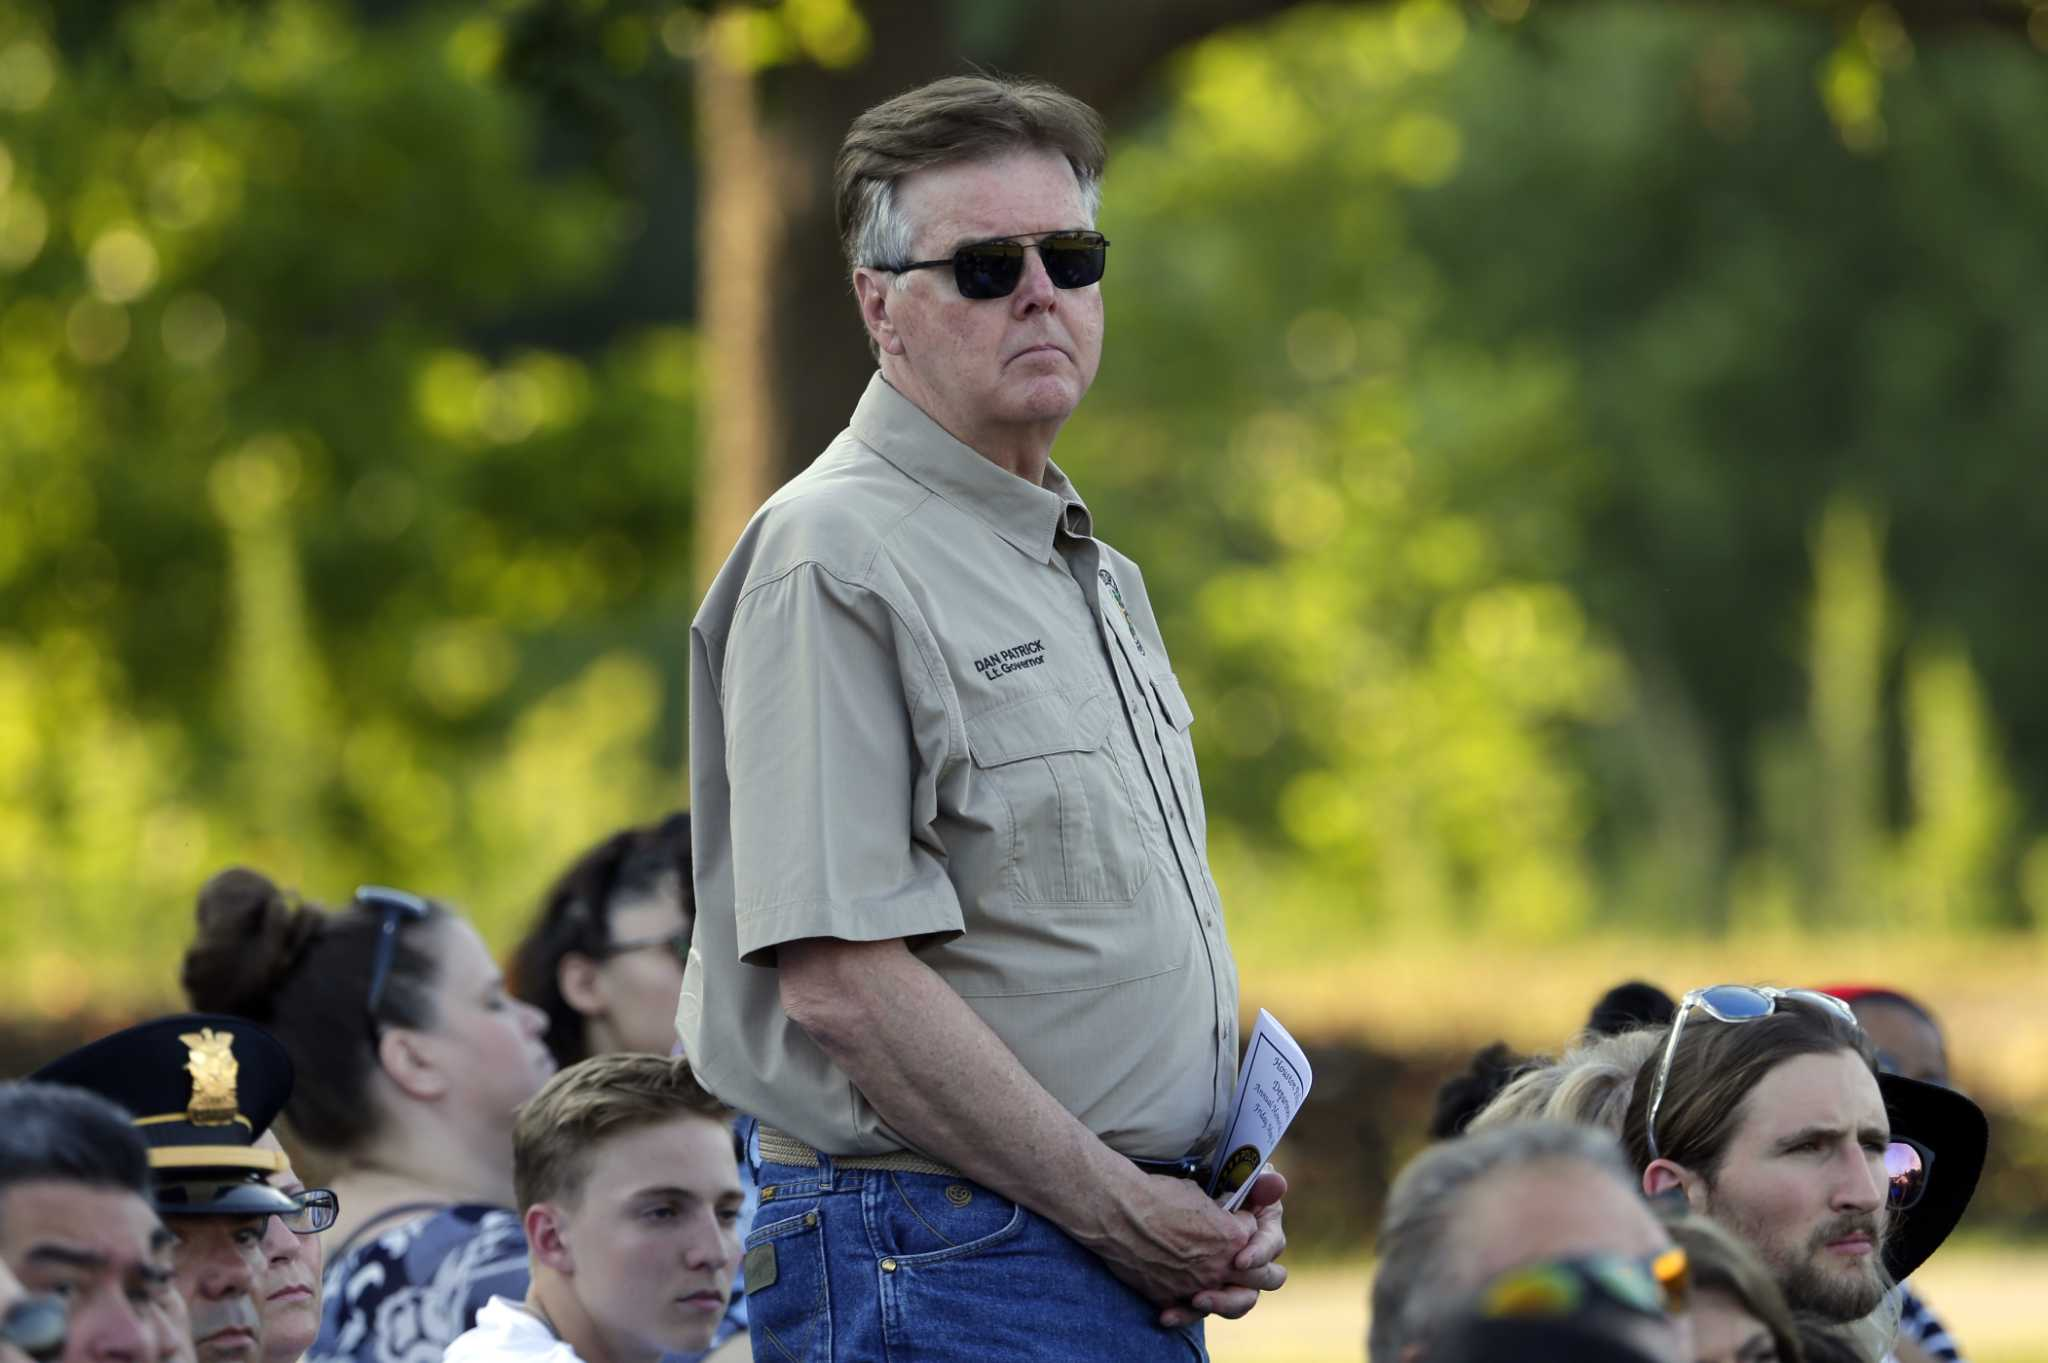 Lt. Gov. Dan Patrick blames video games, advocates arming teachers after Santa Fe shooting